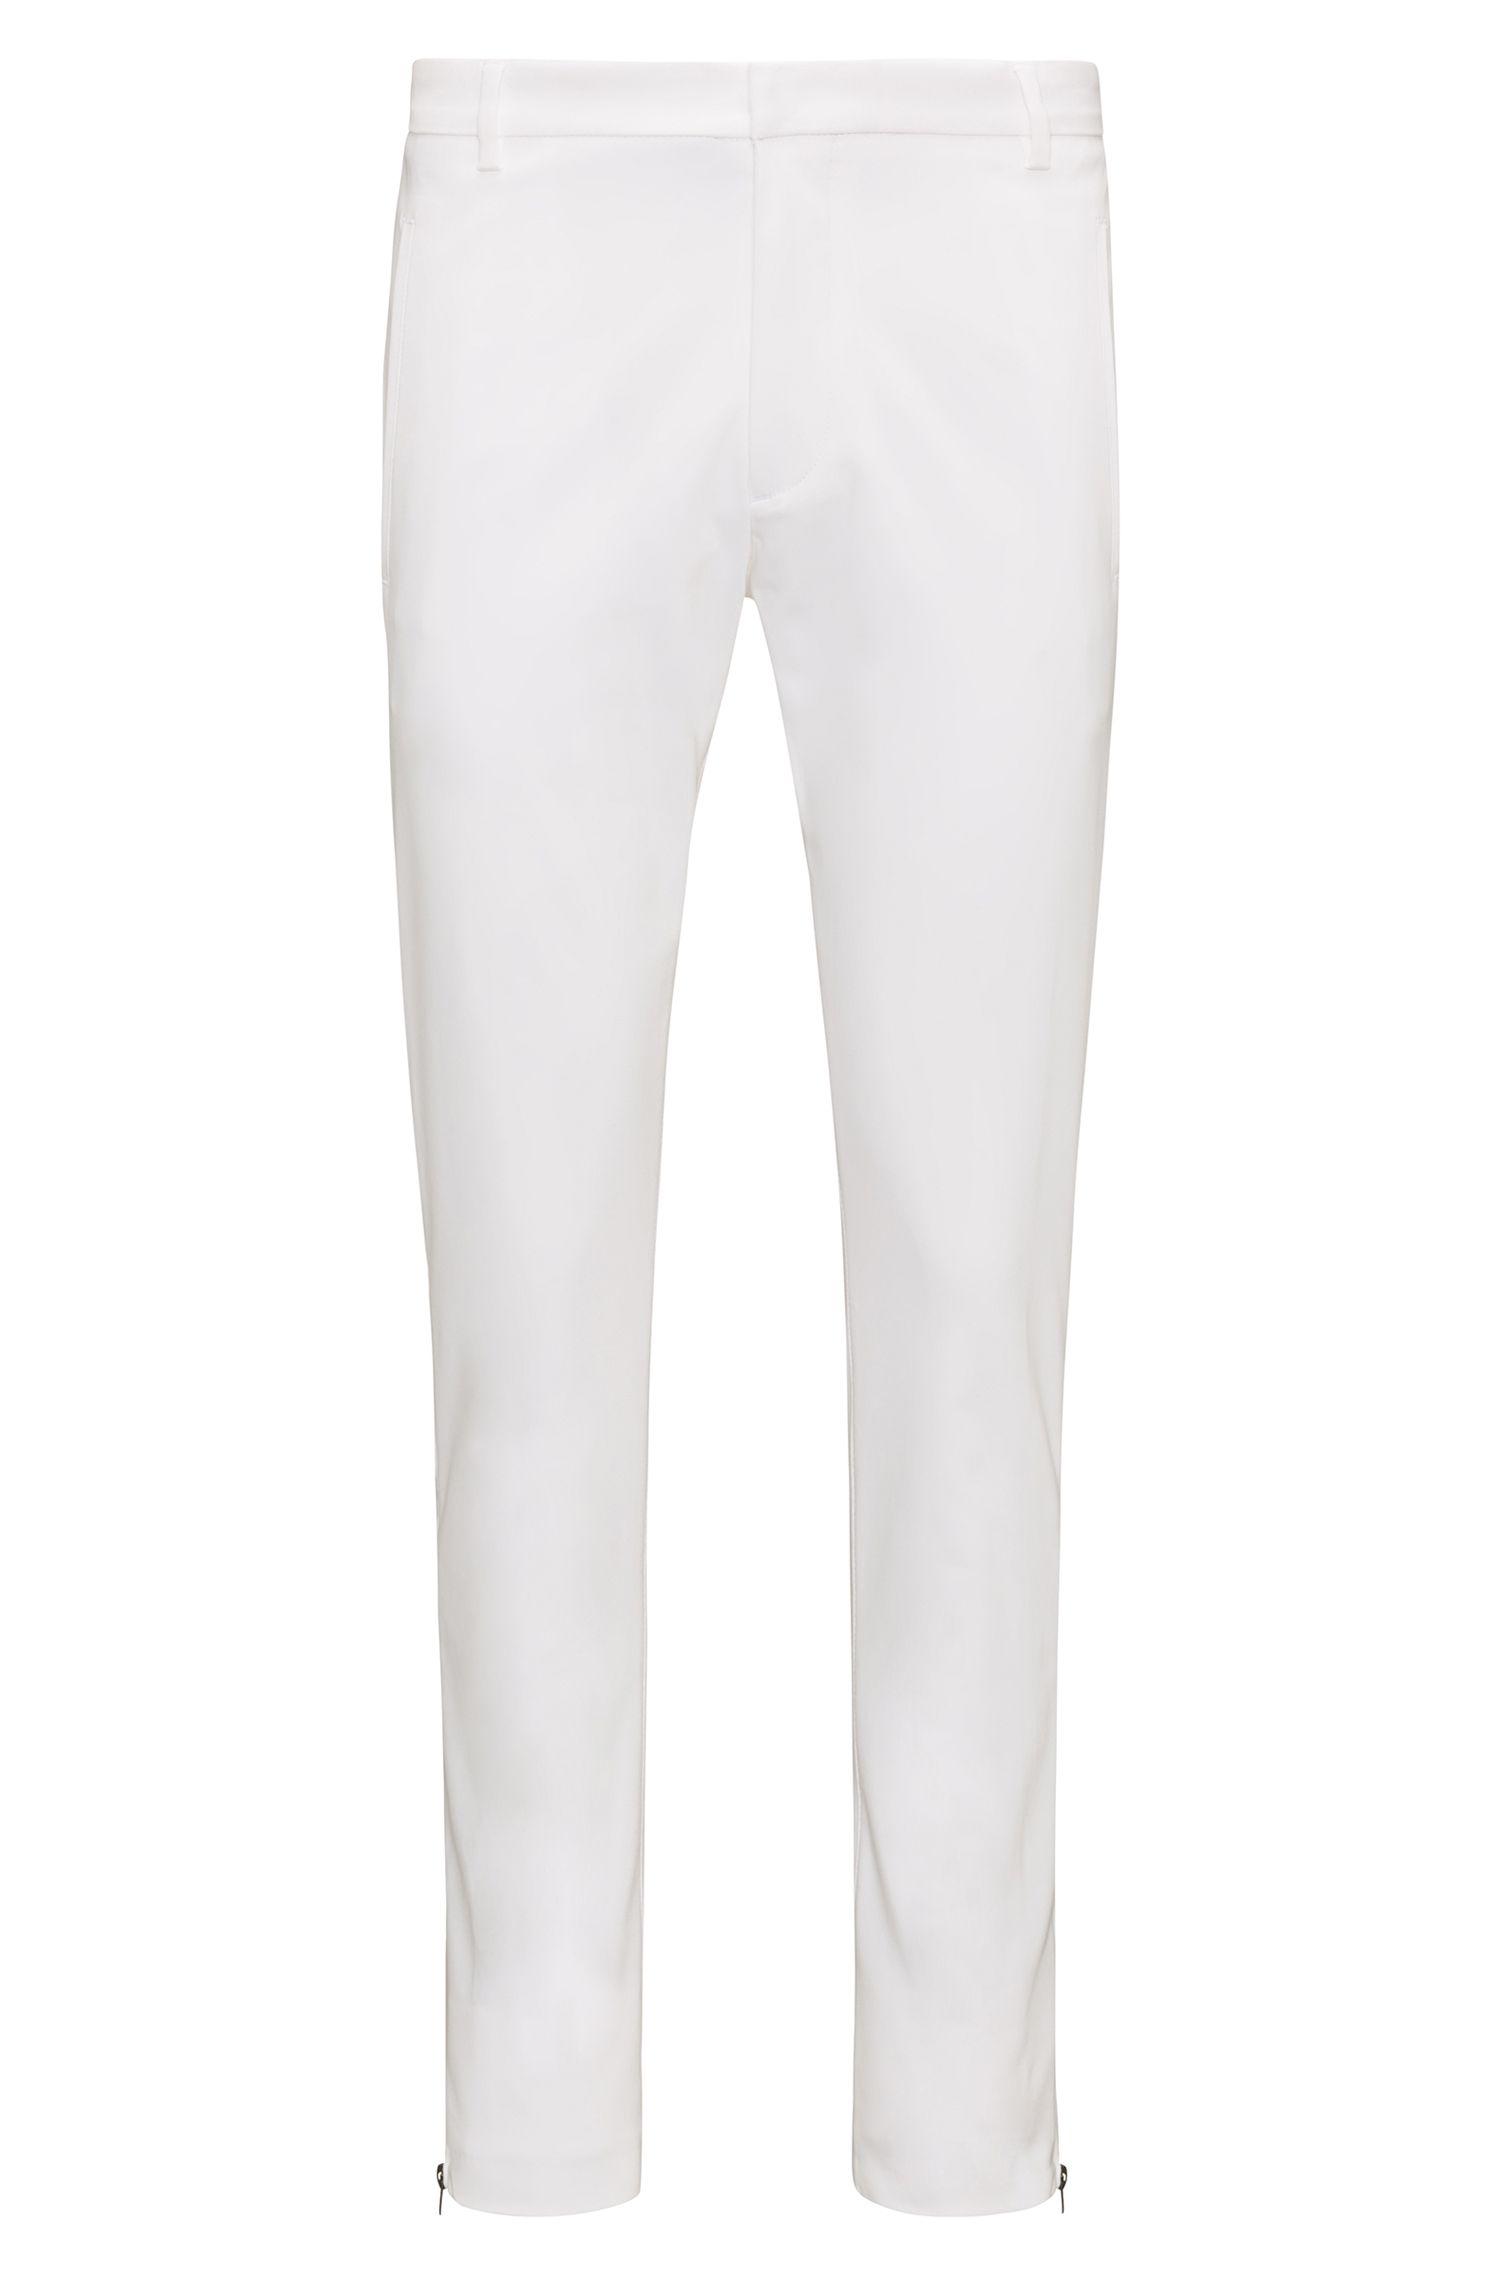 Extra-slim-fit cotton-blend pants with zippered legs, White